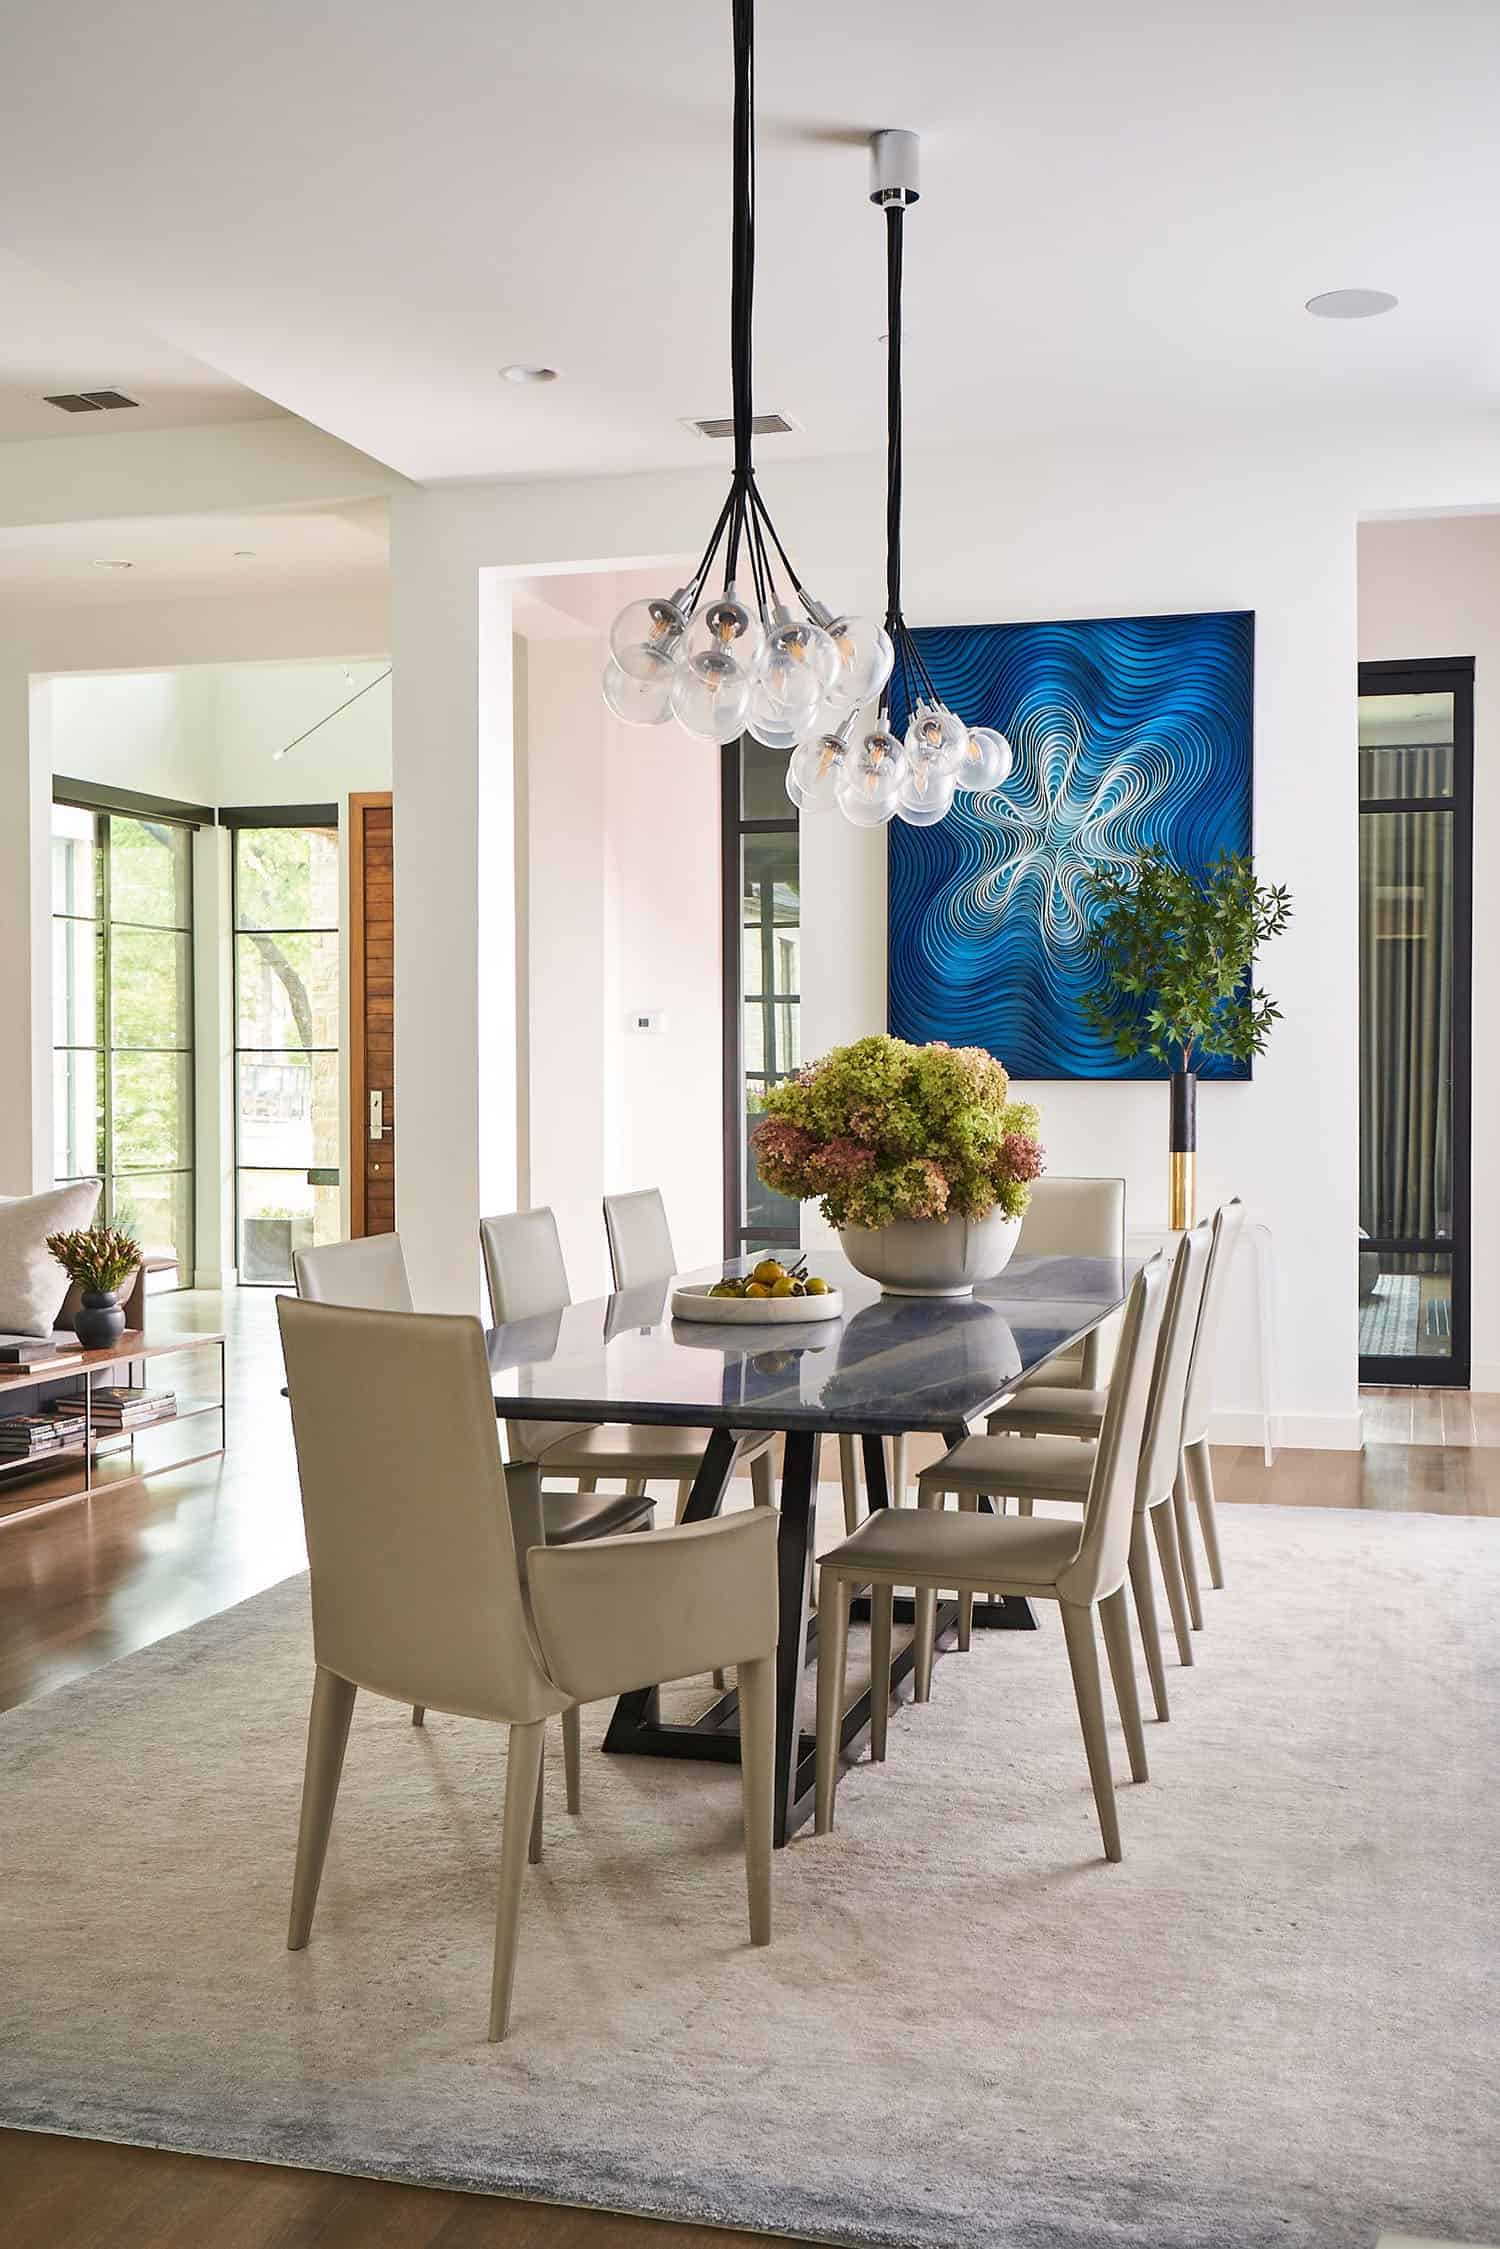 home-remodel-modern-dining-room